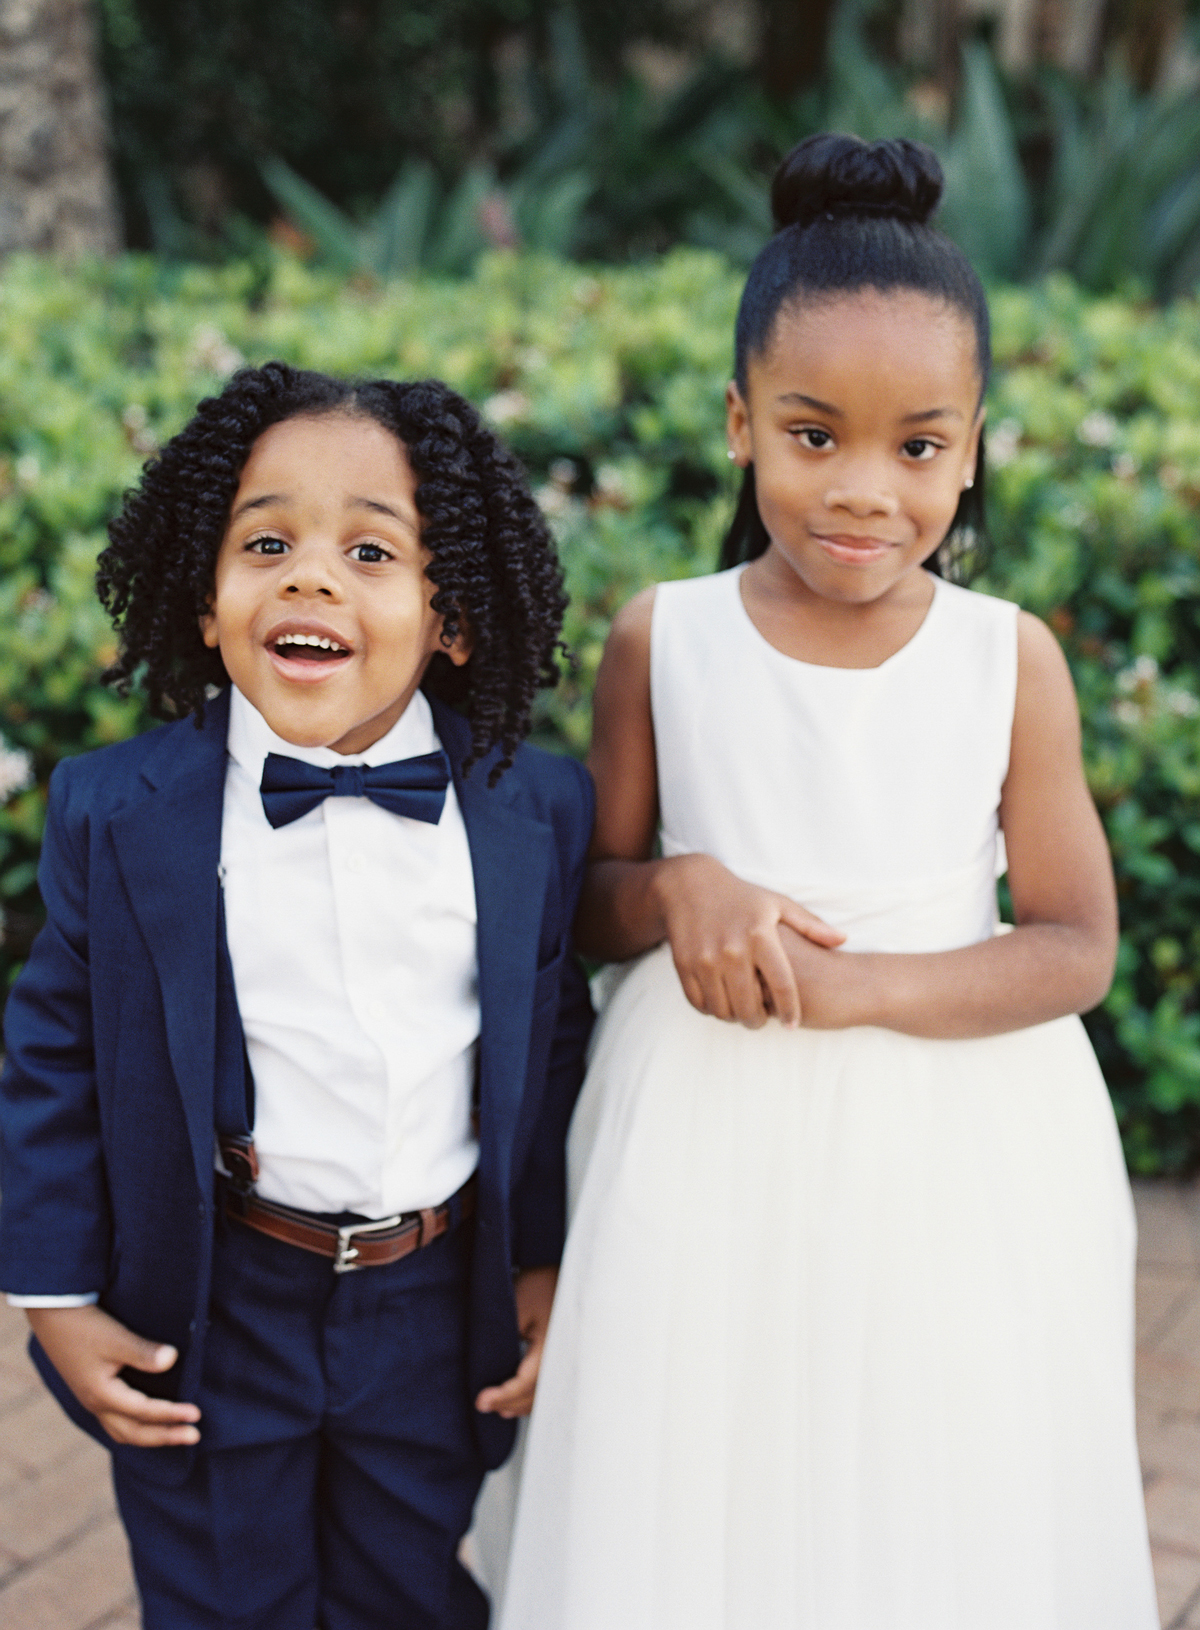 smiling ring bearer and serious flower girl